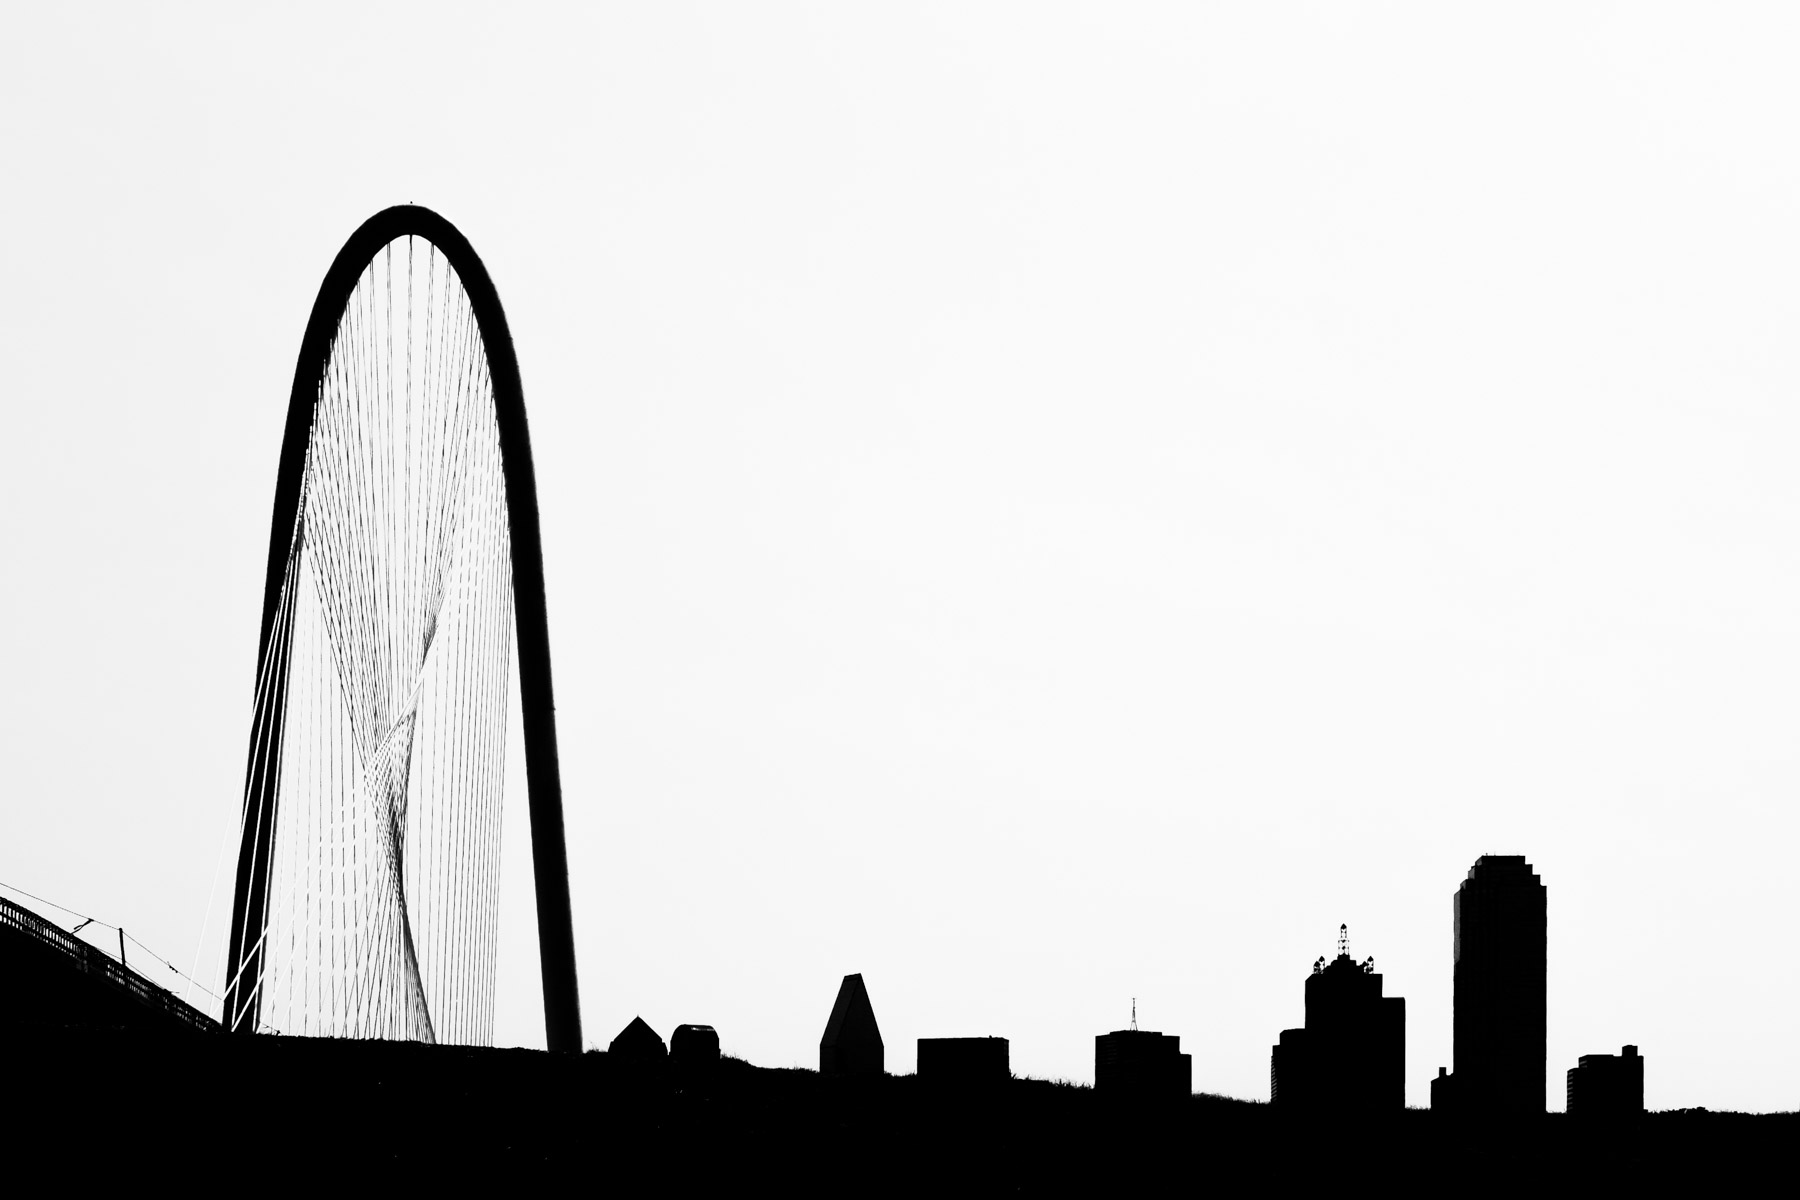 1800x1200 The Bridge And The City Dallas Fort Worth 75centralphotography